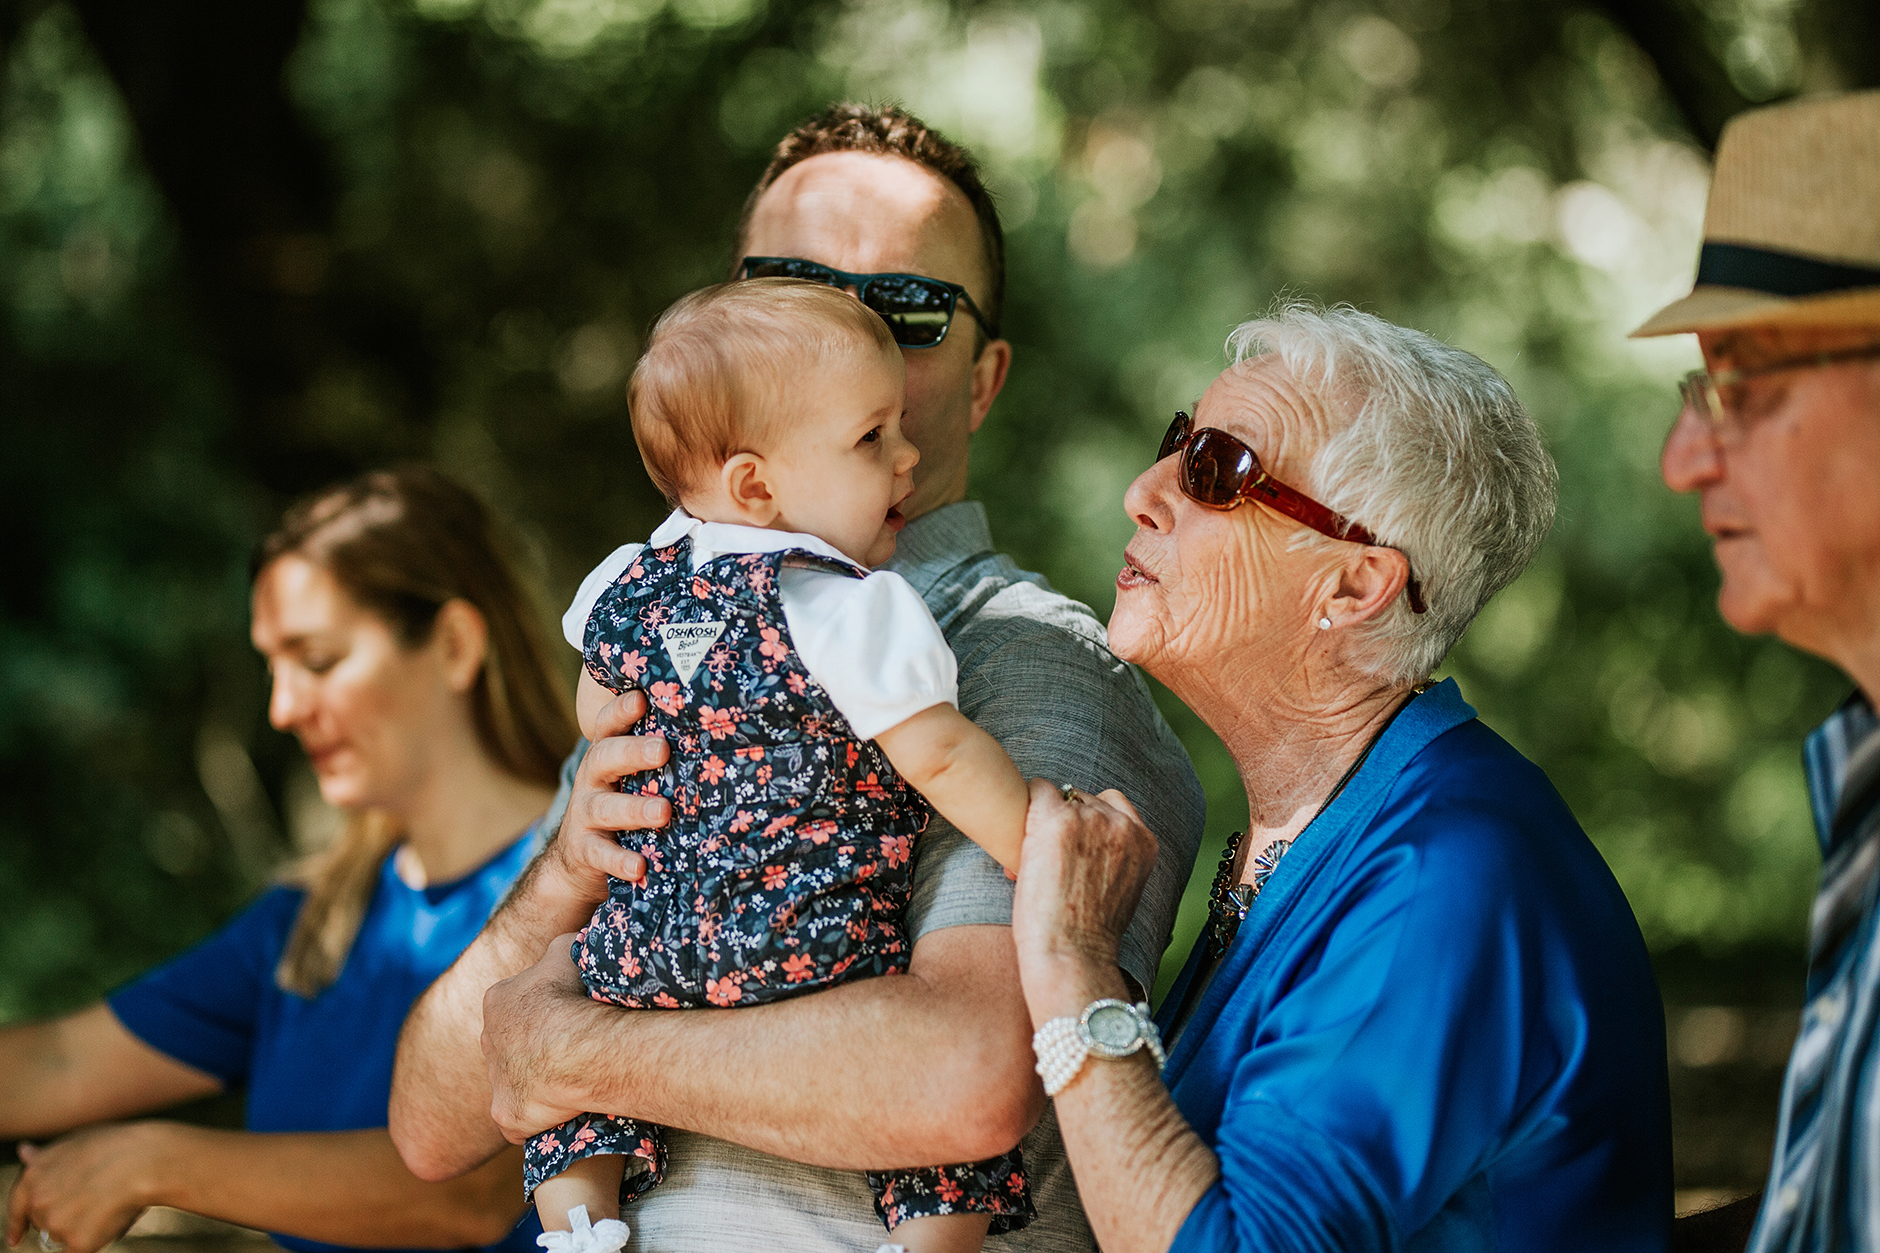 Grandmother making a face at baby girl